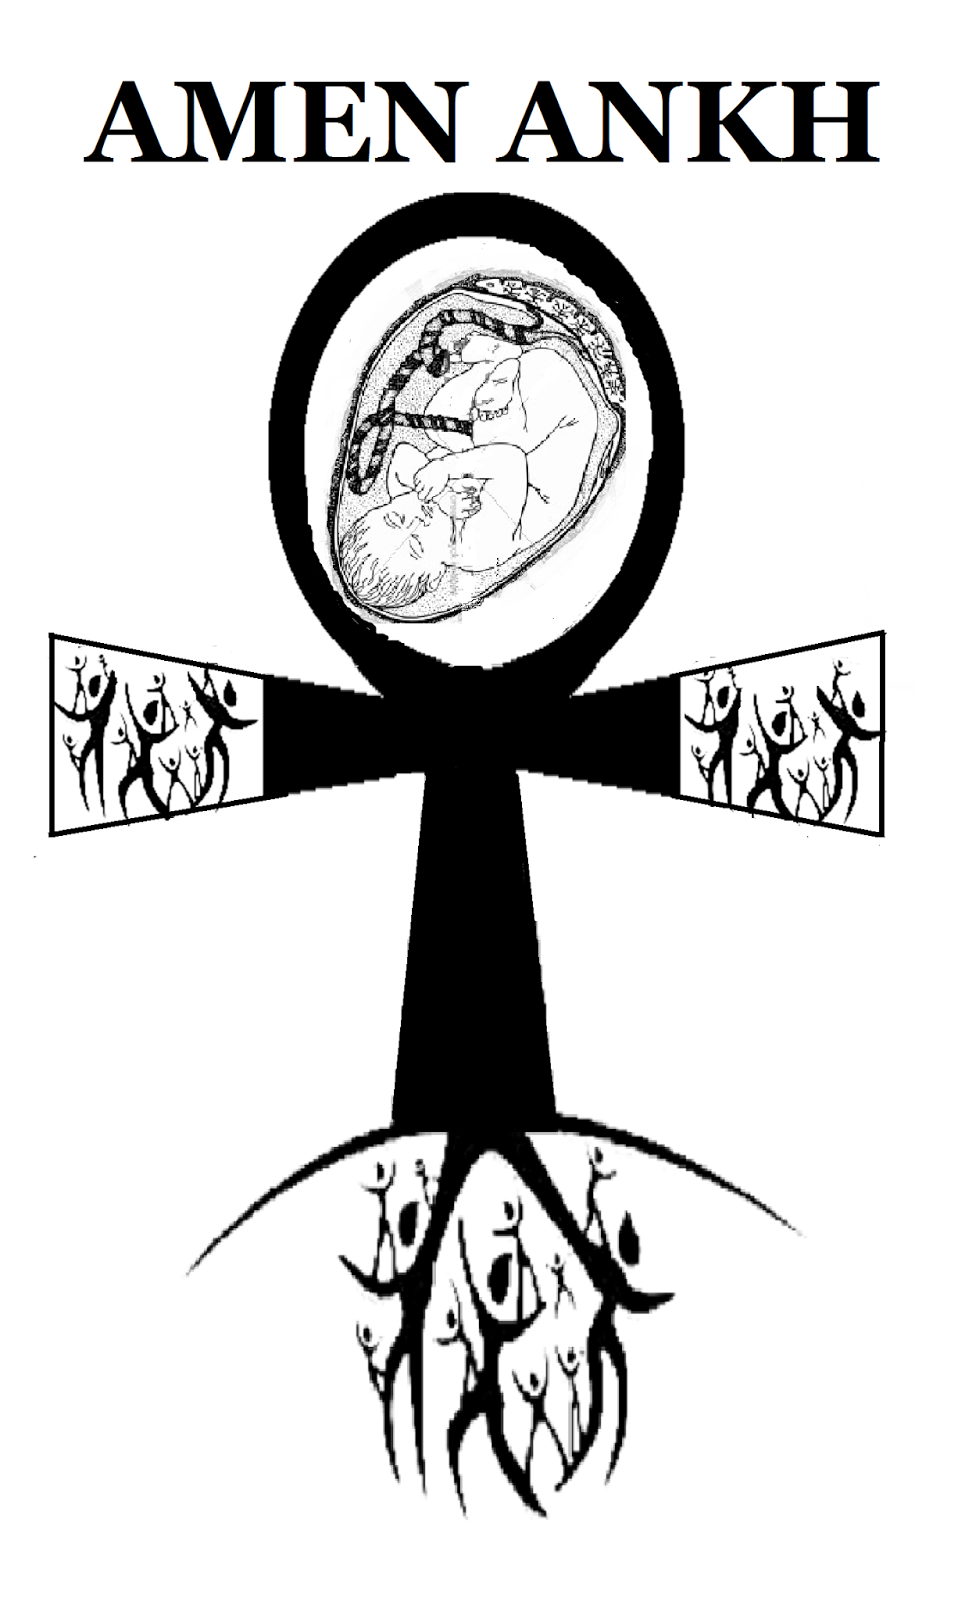 Nutas Ankh Ankh The Kemetic Womb Of Mankind And Symbol Of Eternal Life